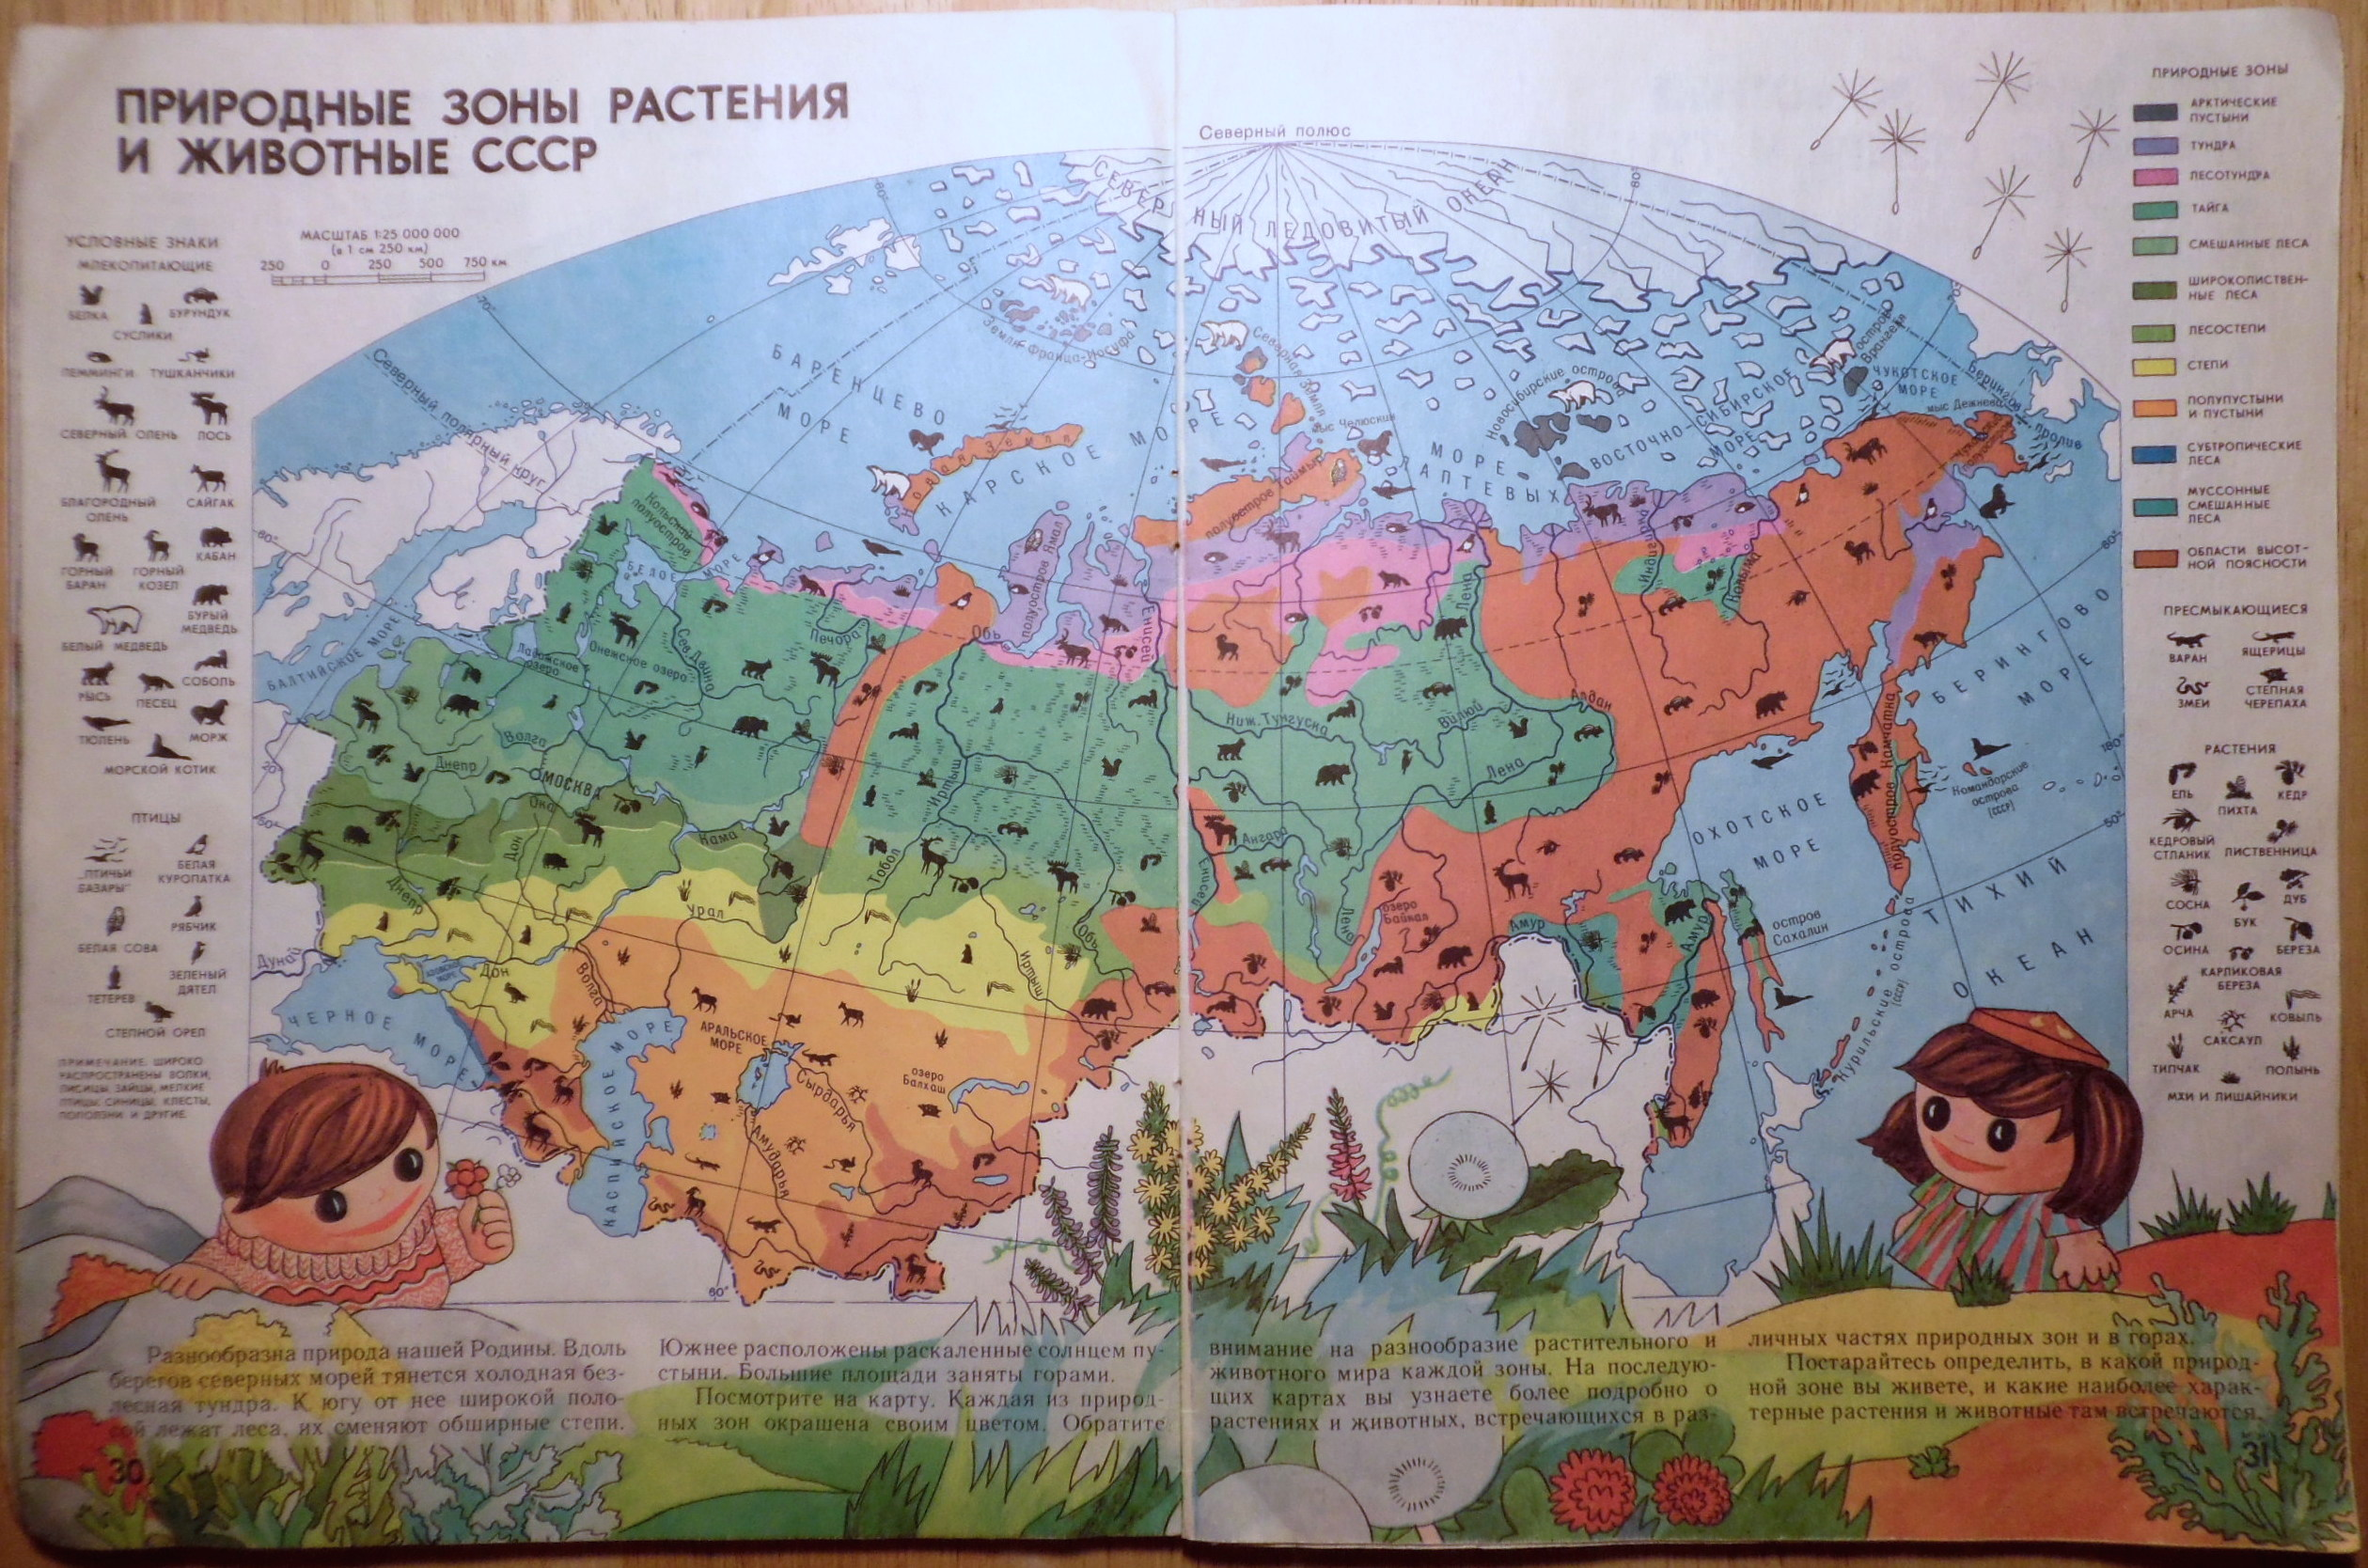 Biomes of the USSR